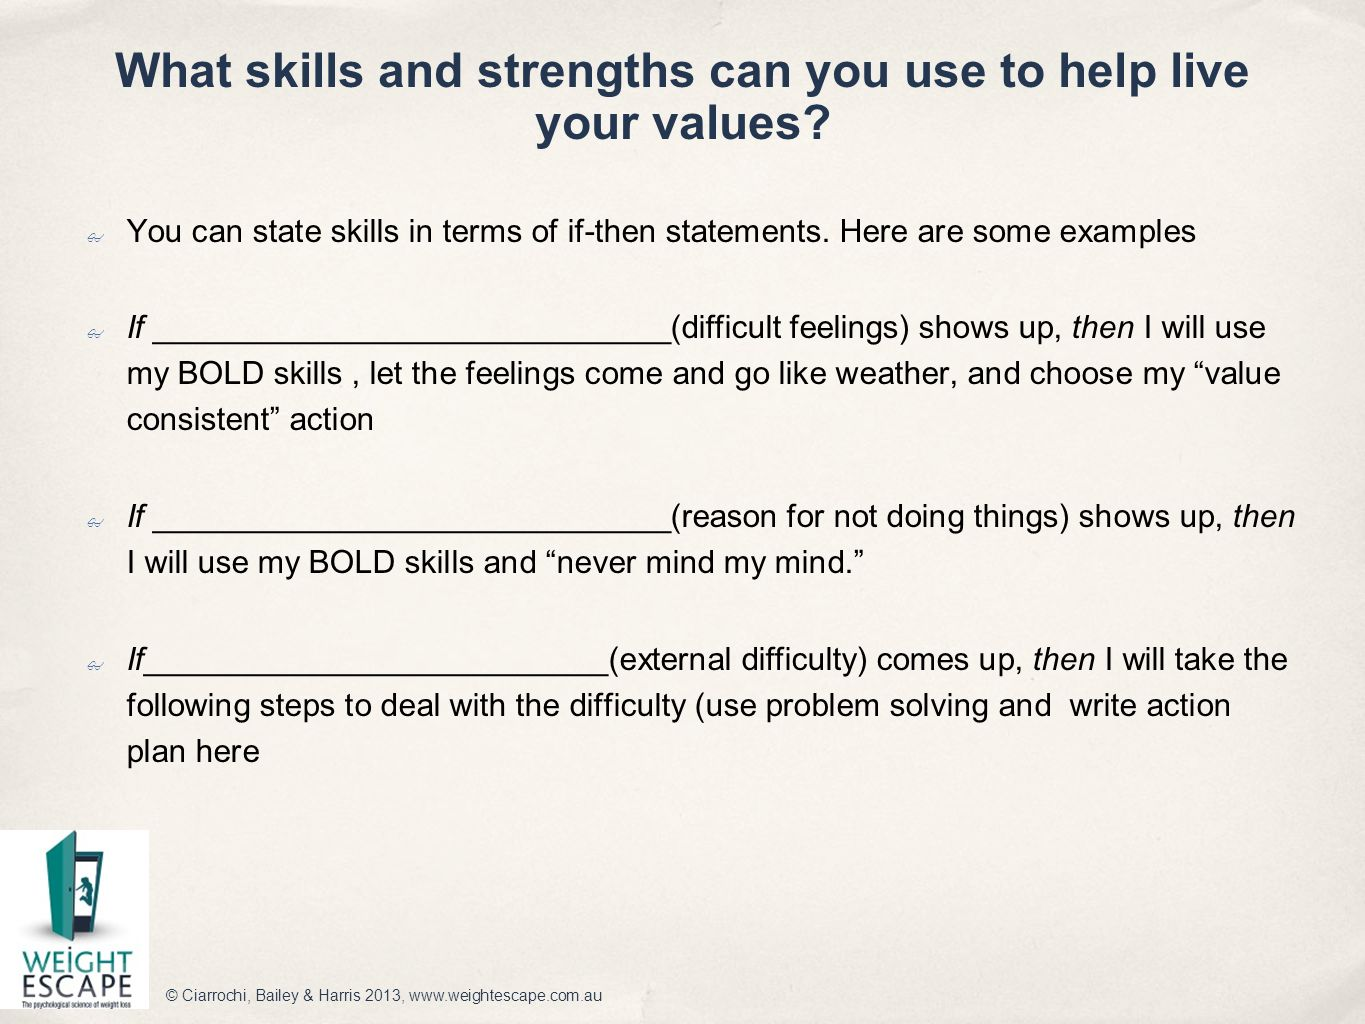 What skills and strengths can you use to help live your values